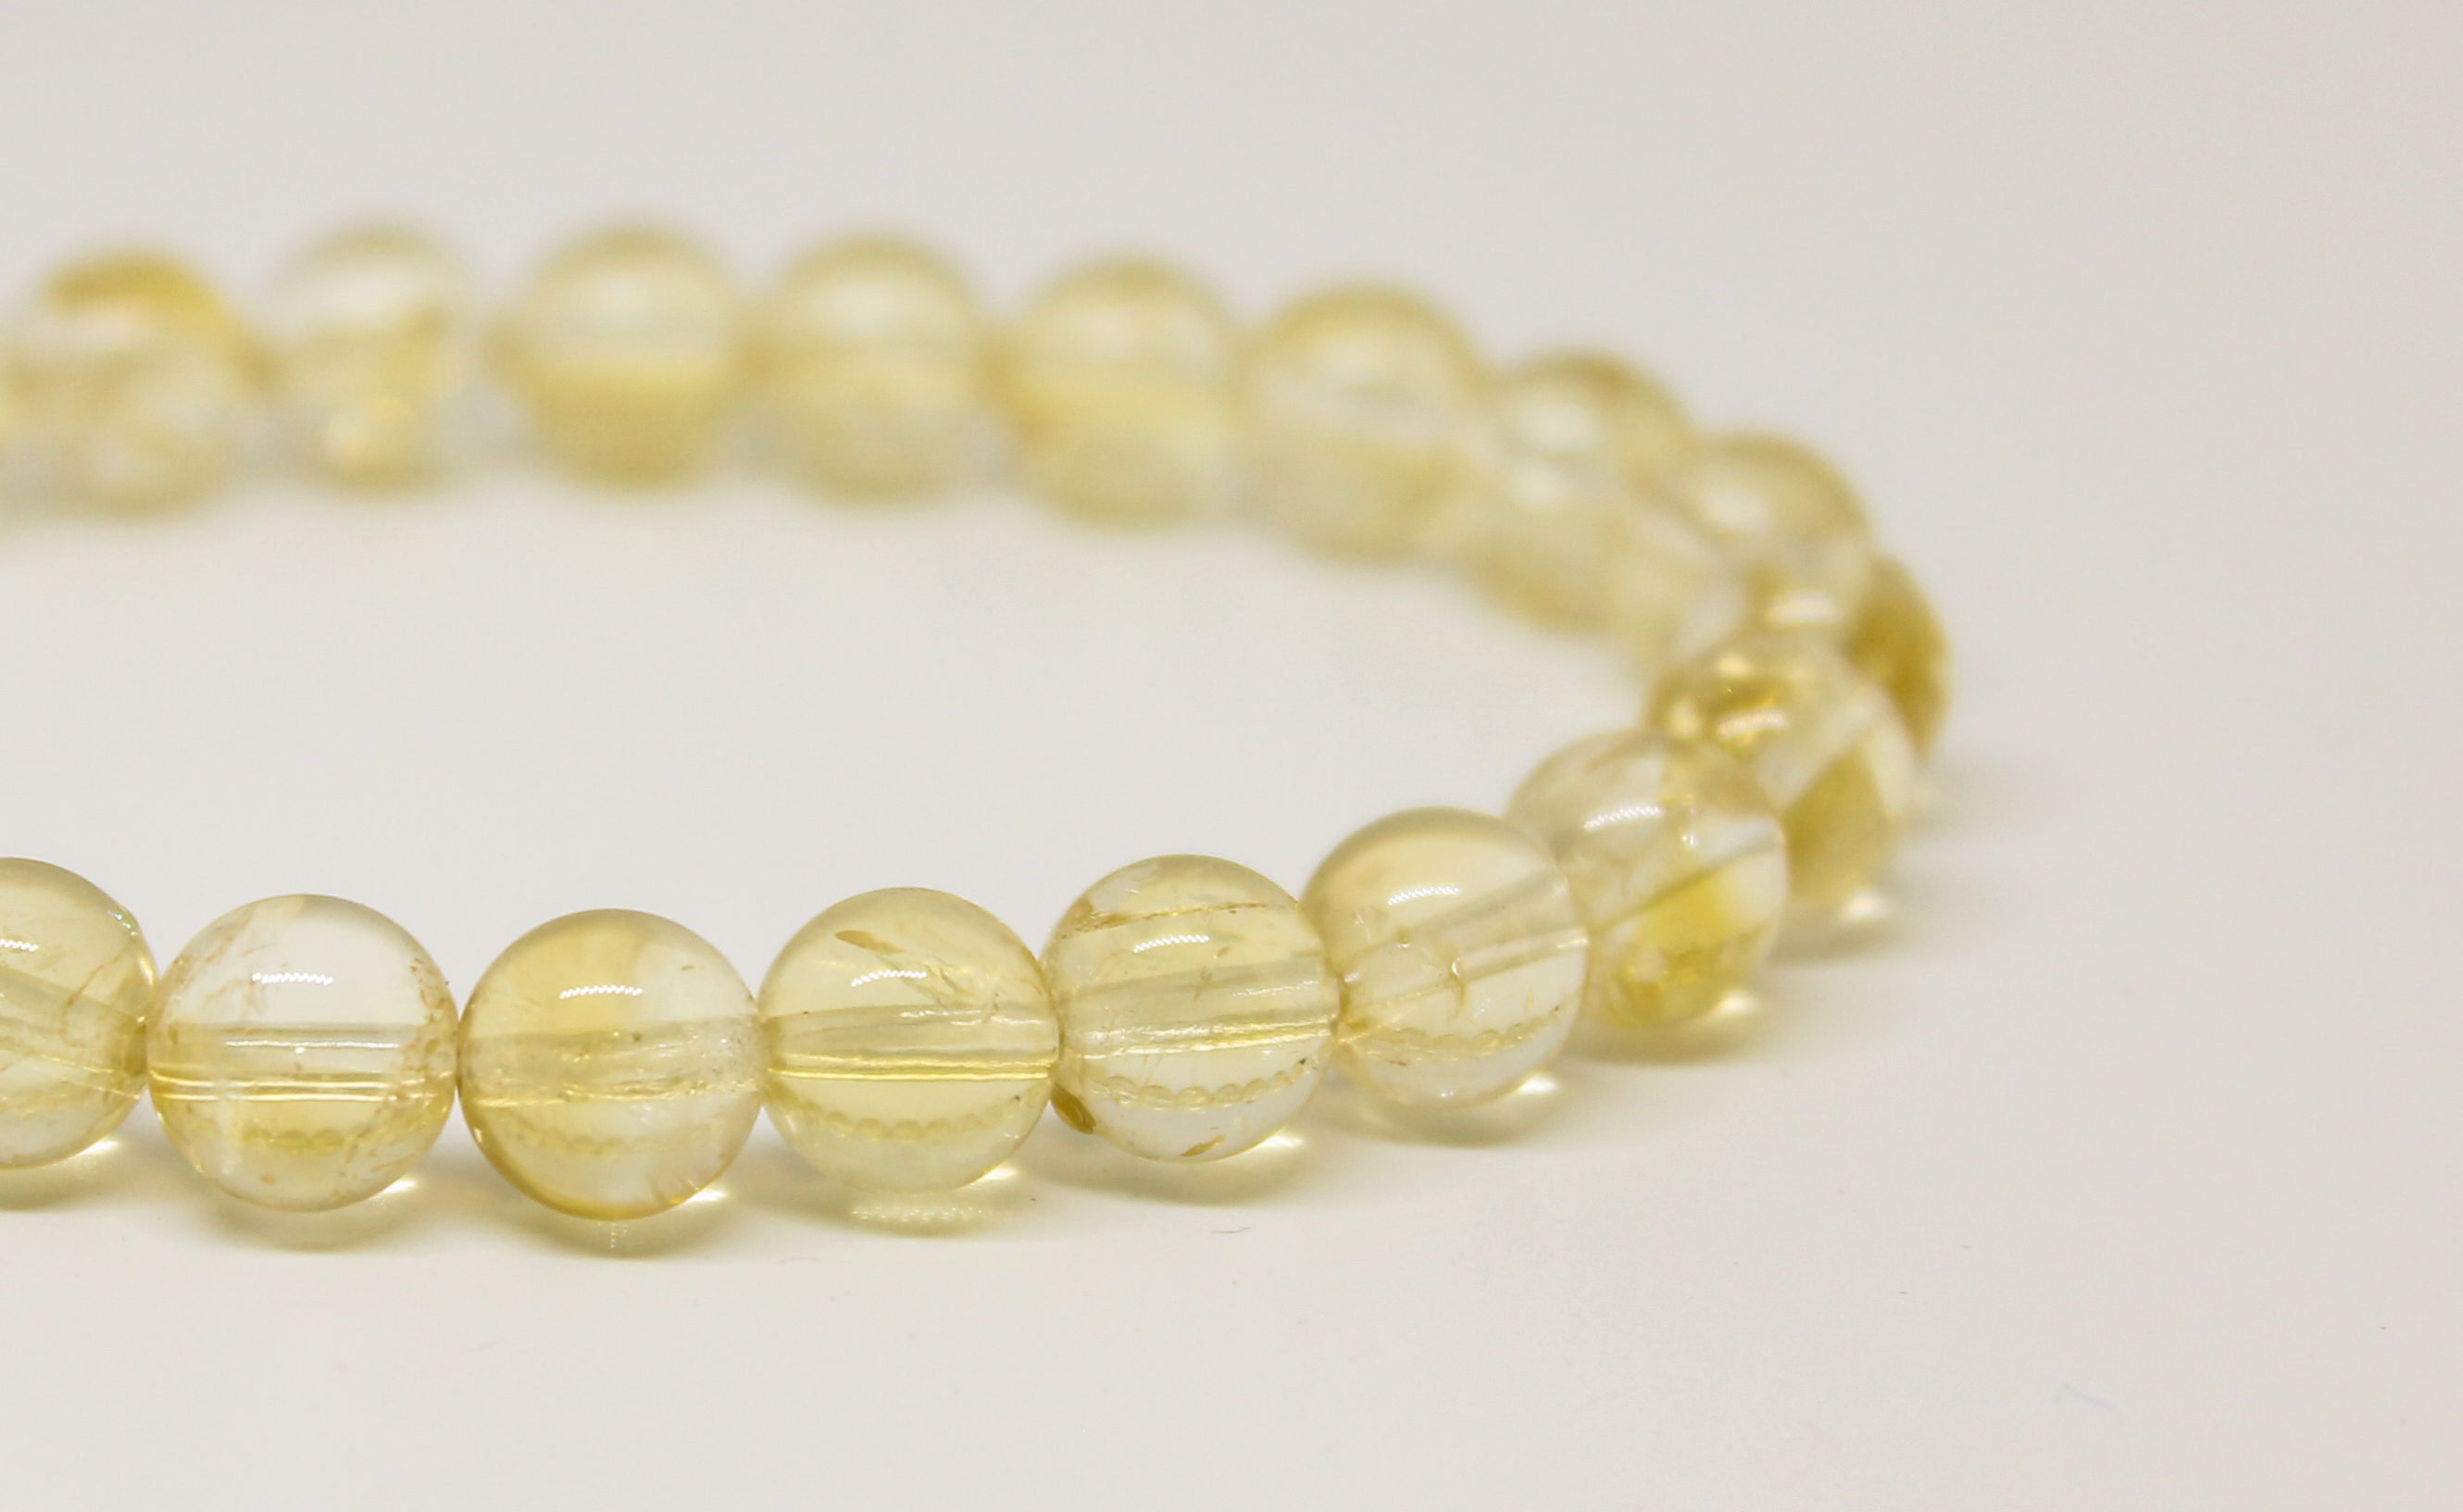 17a41717b4614 Citrine Bracelet 8mm Natural Citrine Womens Bracelet Beaded Bracelet Mens  Bead Bracelet Bracelet for Women Bracelet for Men Bracelet Stretch